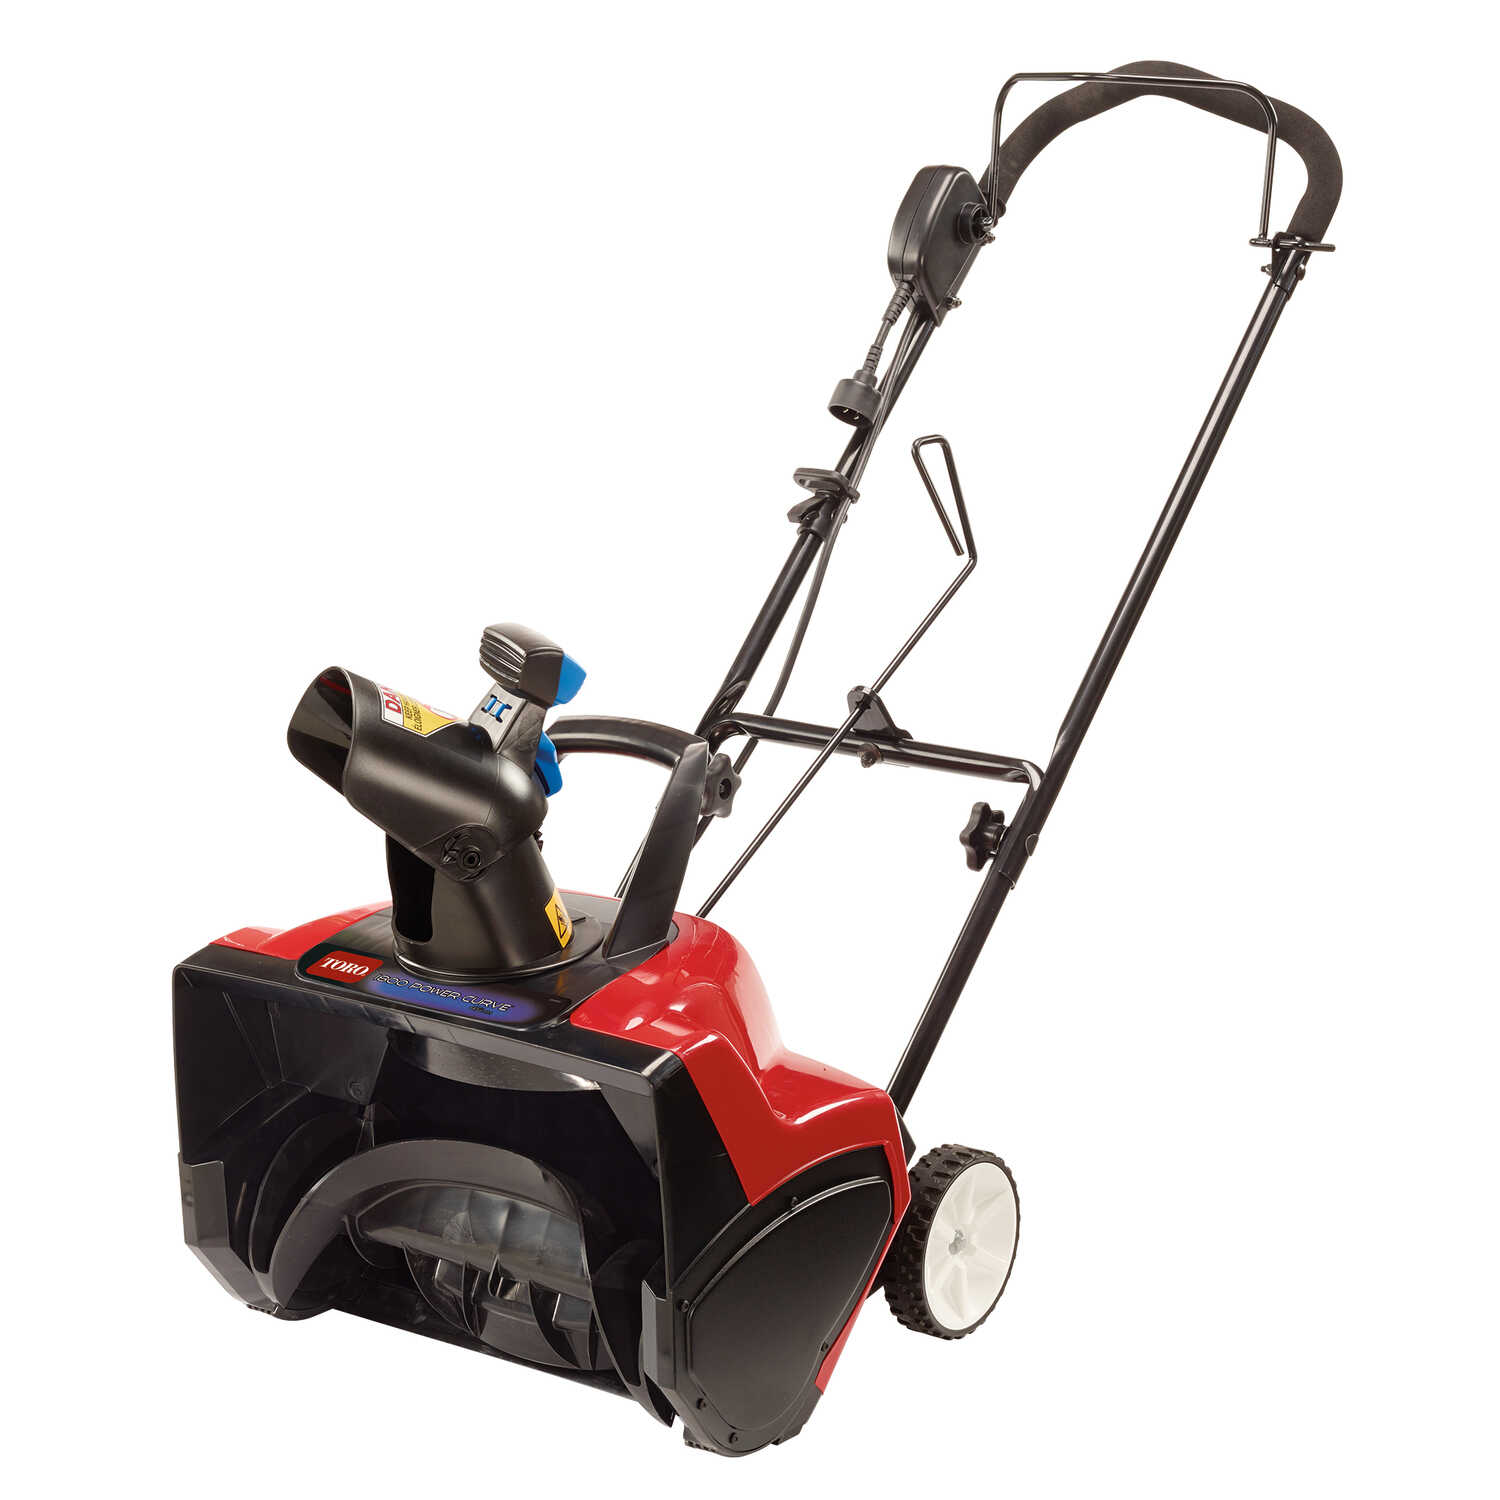 Toro  Power Curve  18 in. W 4 cc Single-Stage  Electric Start  Electric  Snow Blower